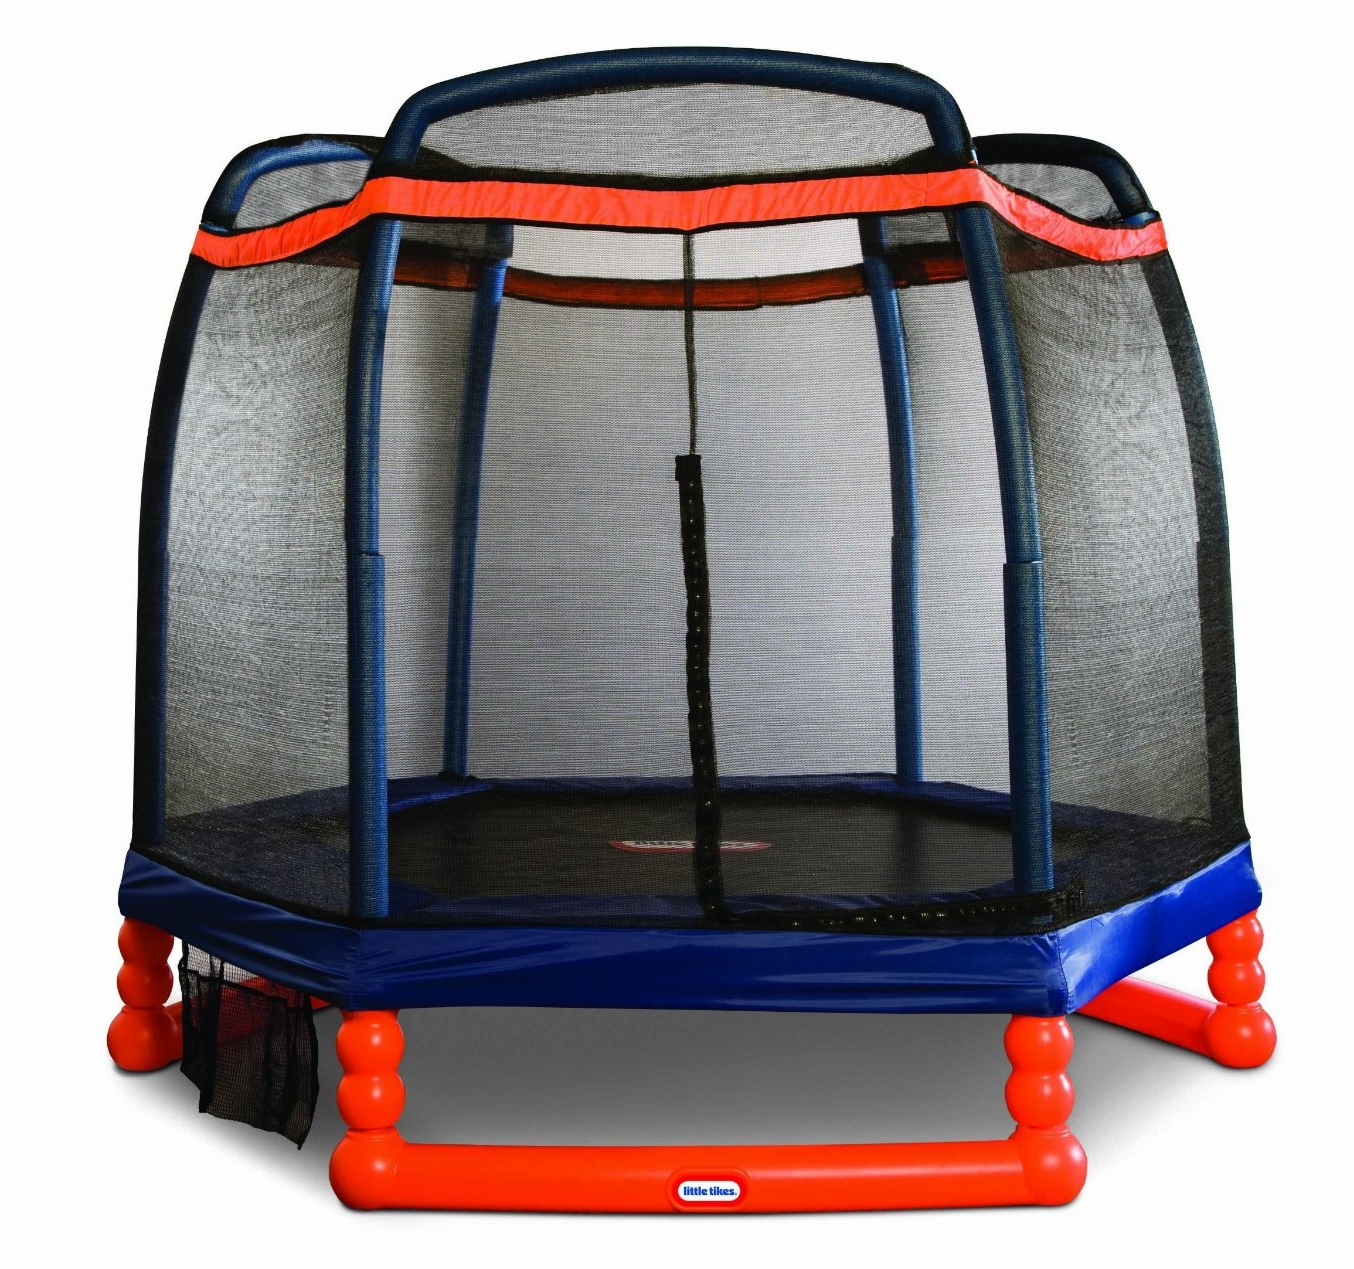 7ft Amp 8ft Trampolines For Kids 3 Units To Look At